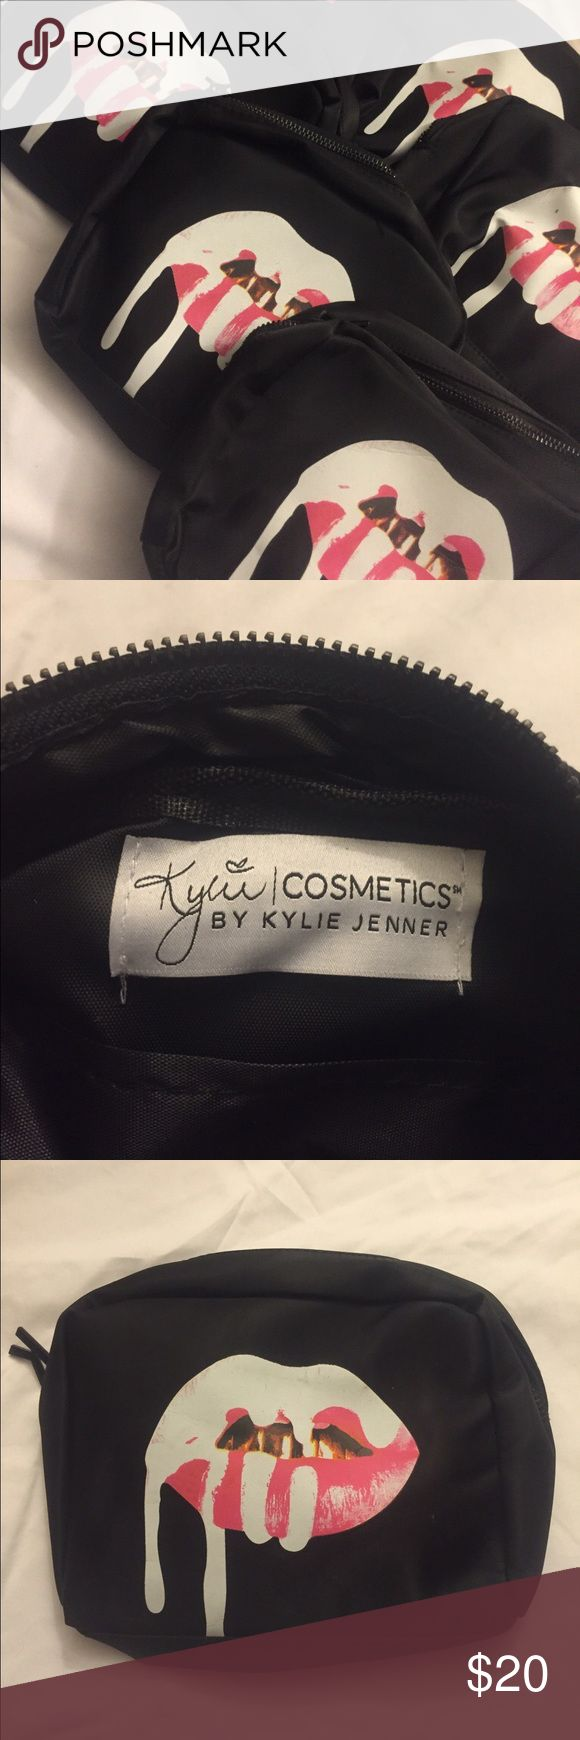 Black Kylie zip around pouch Kylie Jenner makeup bag! Kylie Cosmetics Bags Cosmetic Bags & Cases